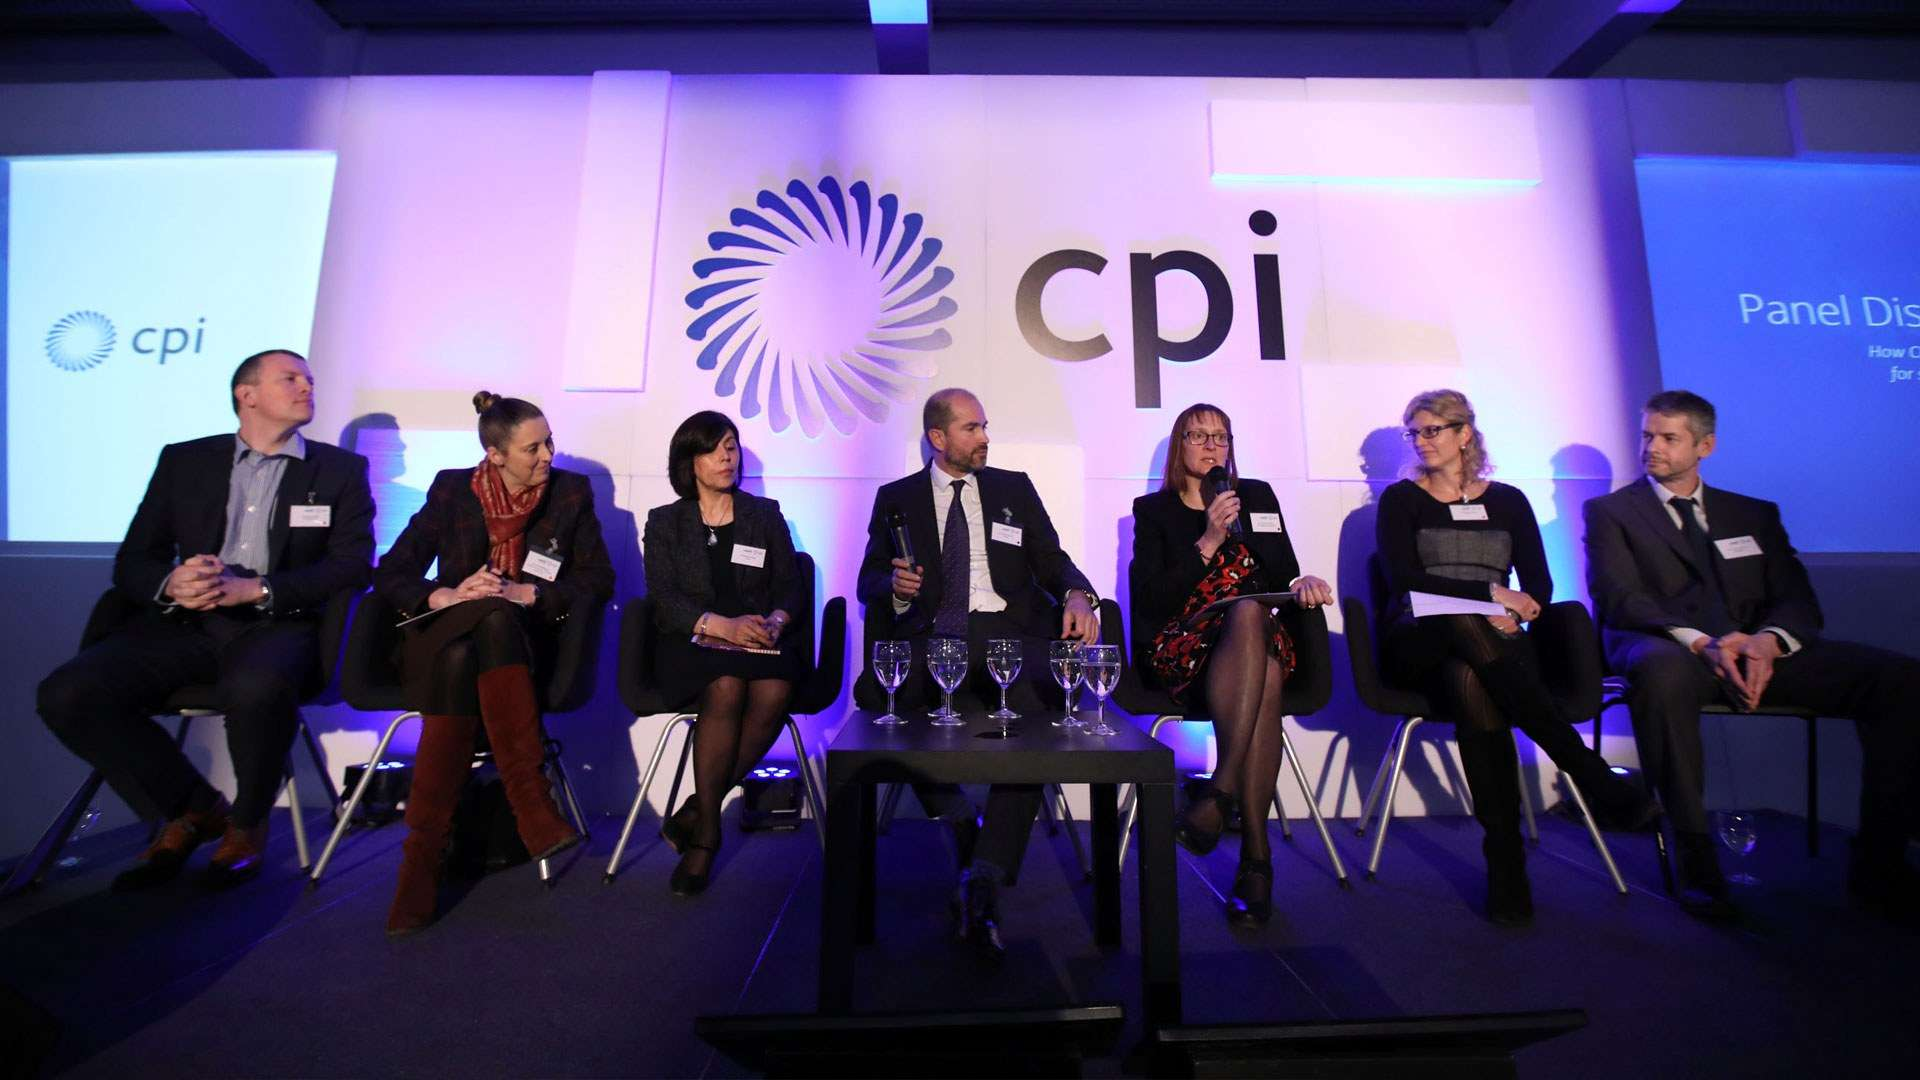 A panel discussion takes place on how CPI addresses the need for support in formulation